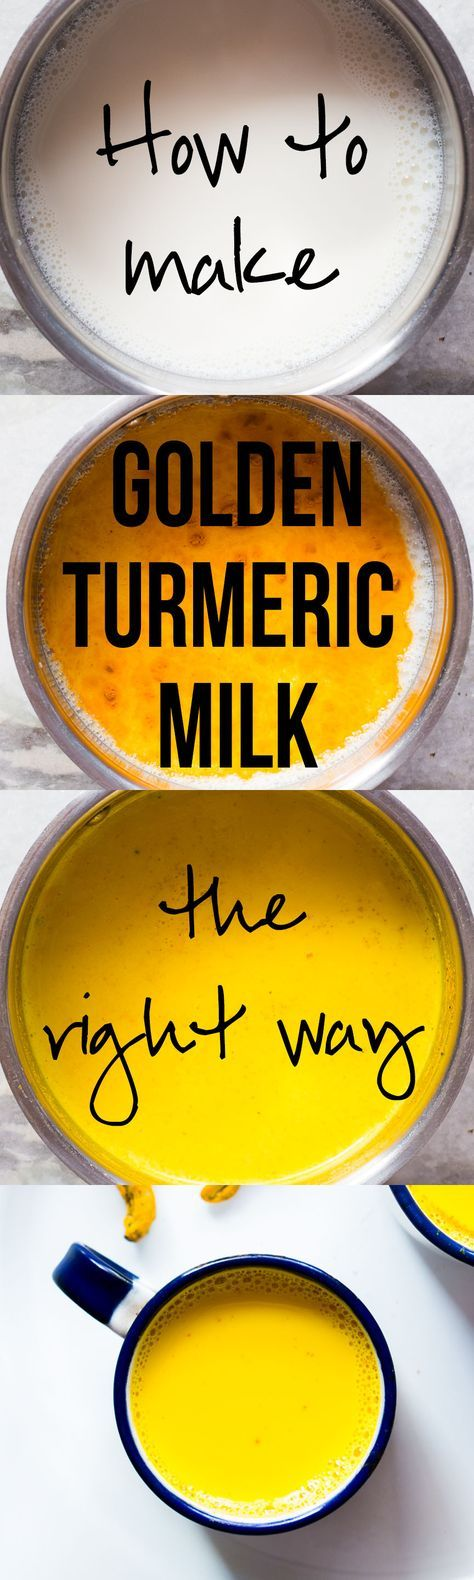 Golden Turmeric Milk or Haldi Doodh is a powerful Ayurvedic Indian drink with medicinal properties. We've been making it for generations and it's so important to make it the right way! It's a great immunity booster when suffering from cold, cough, sore throat, headaches, joint aches etc. It's best when made with milk, but you can use any plant based milk to make it vegan. via @my_foodstory